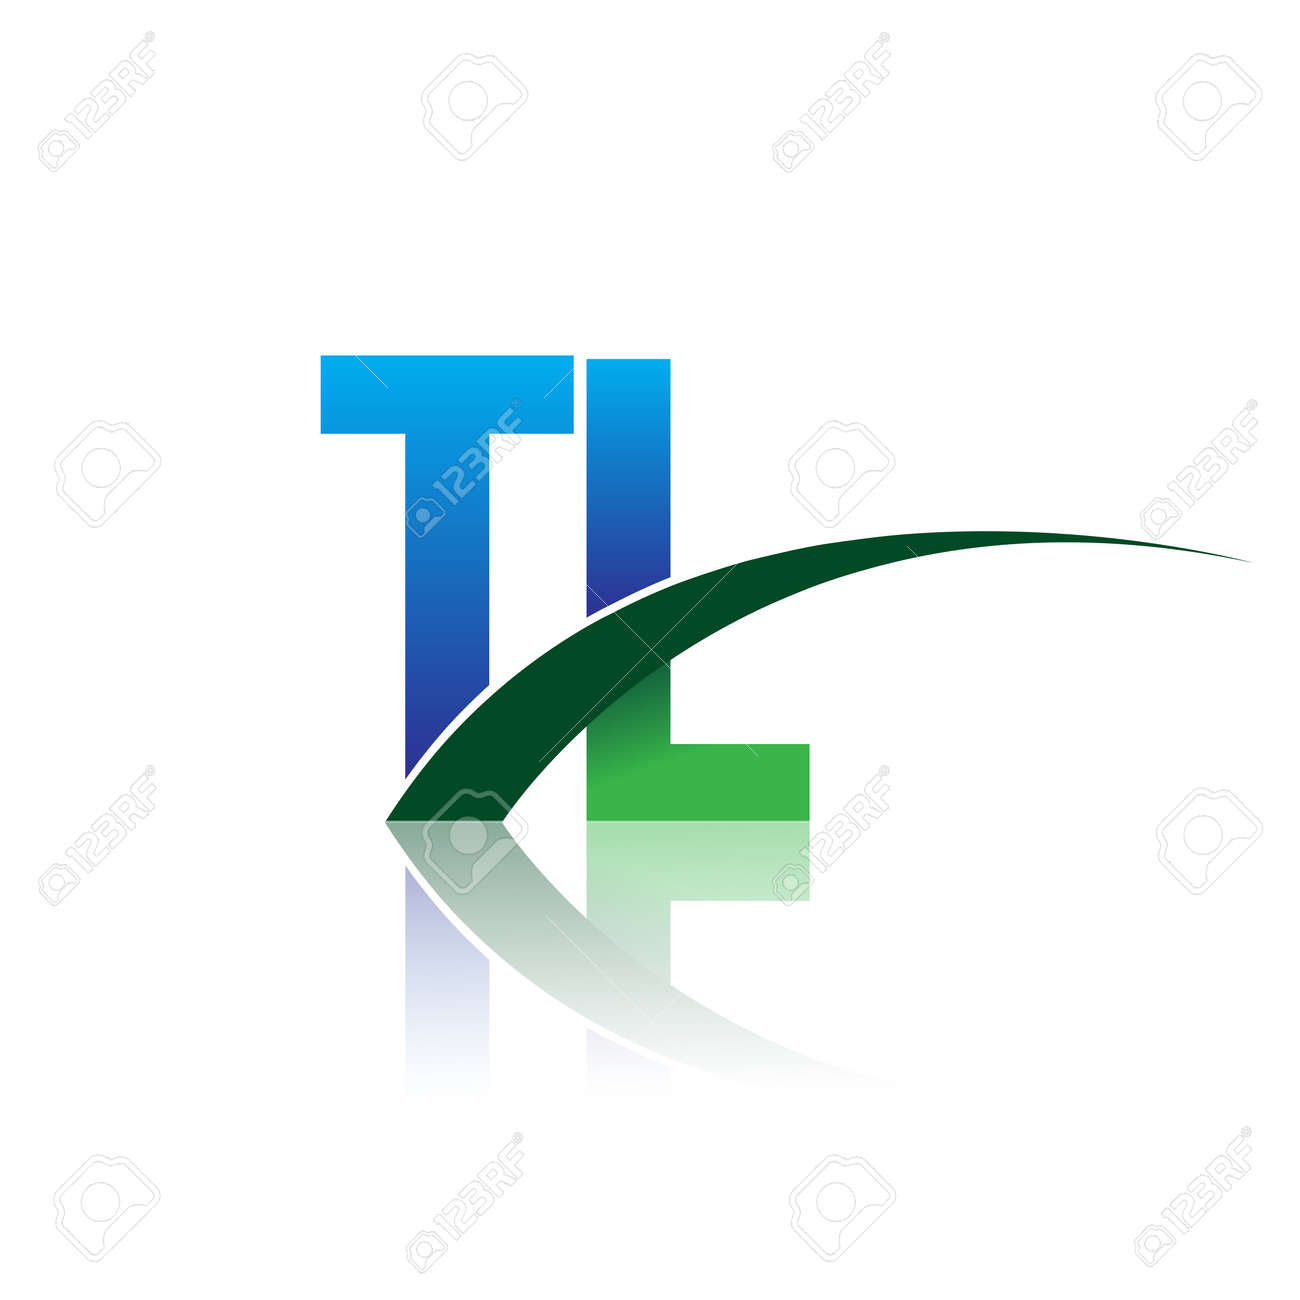 initial letter TL logotype company name colored blue and green swoosh design. vector logo for business and company identity. - 159470294